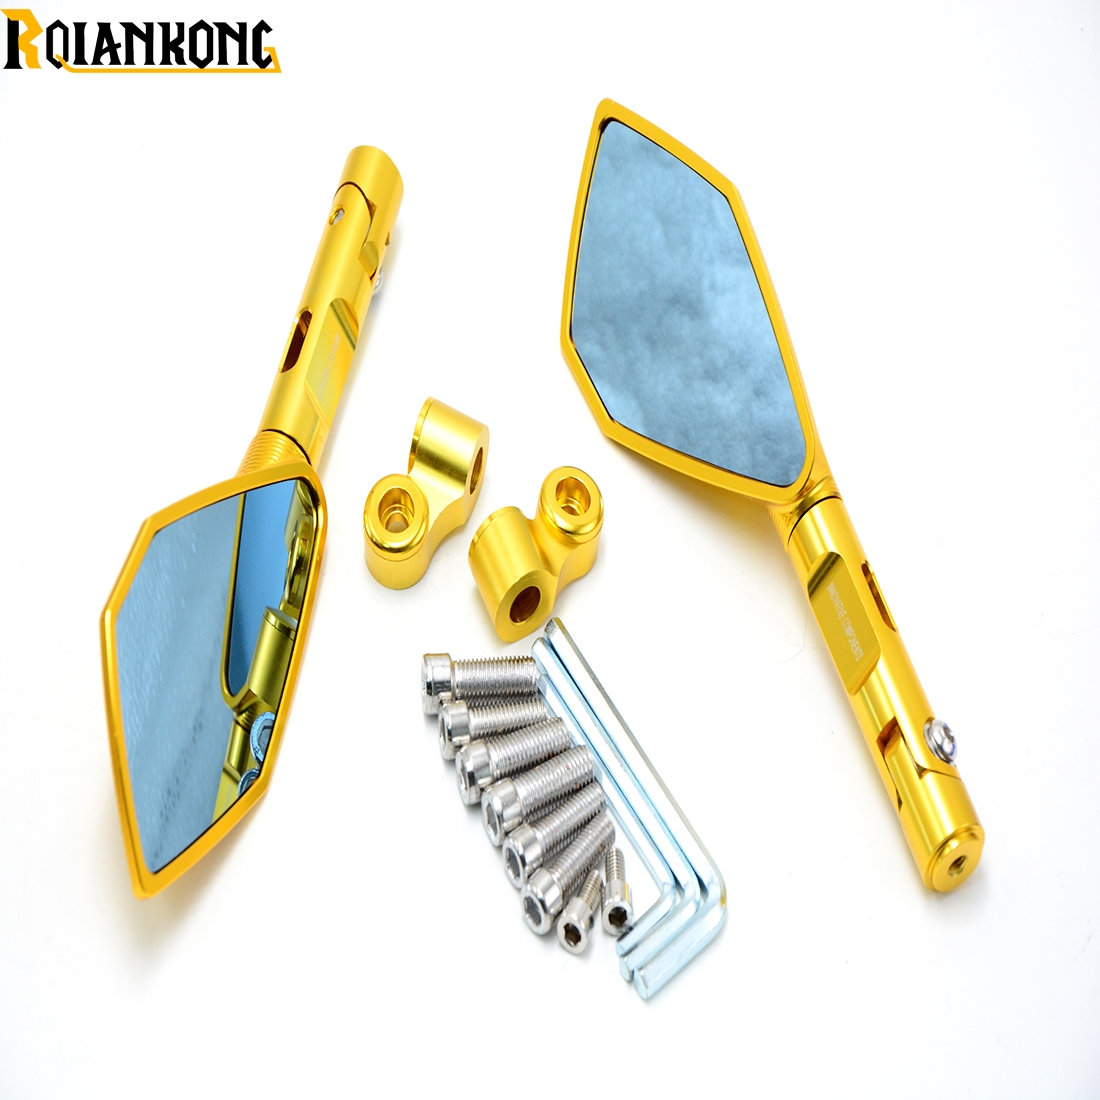 Italy Brand logo mark Motorcycle Rearview side Mirrors CNC Aluminum for BMW HP2 Enduro HP2 Megamoto HP2 C600 C650 Sport<br>